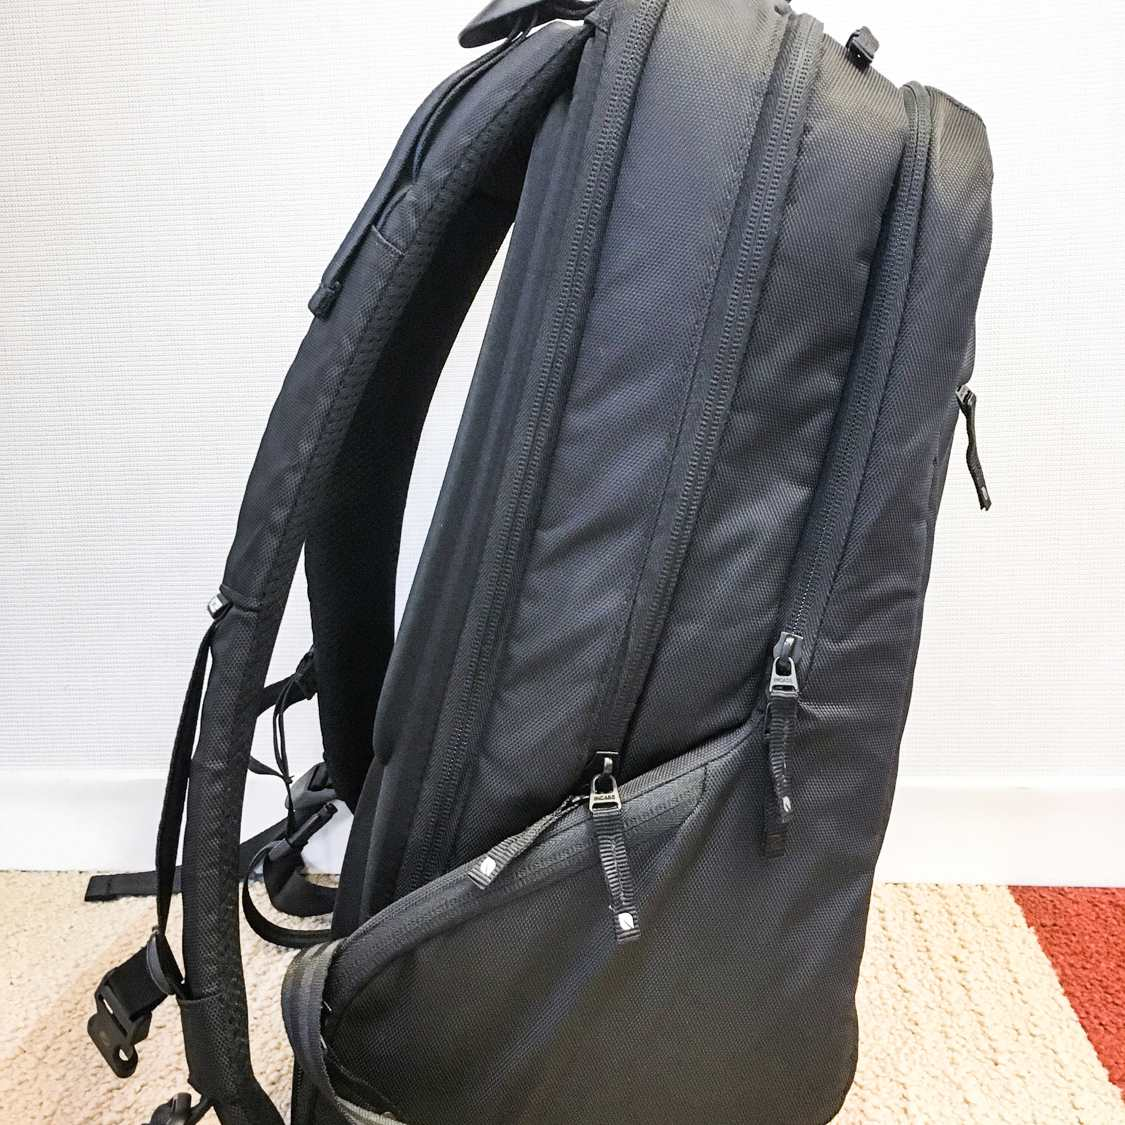 This Is The Laptop Bag For You One Of Our Reviewers Said Padding In Was So Good It Felt